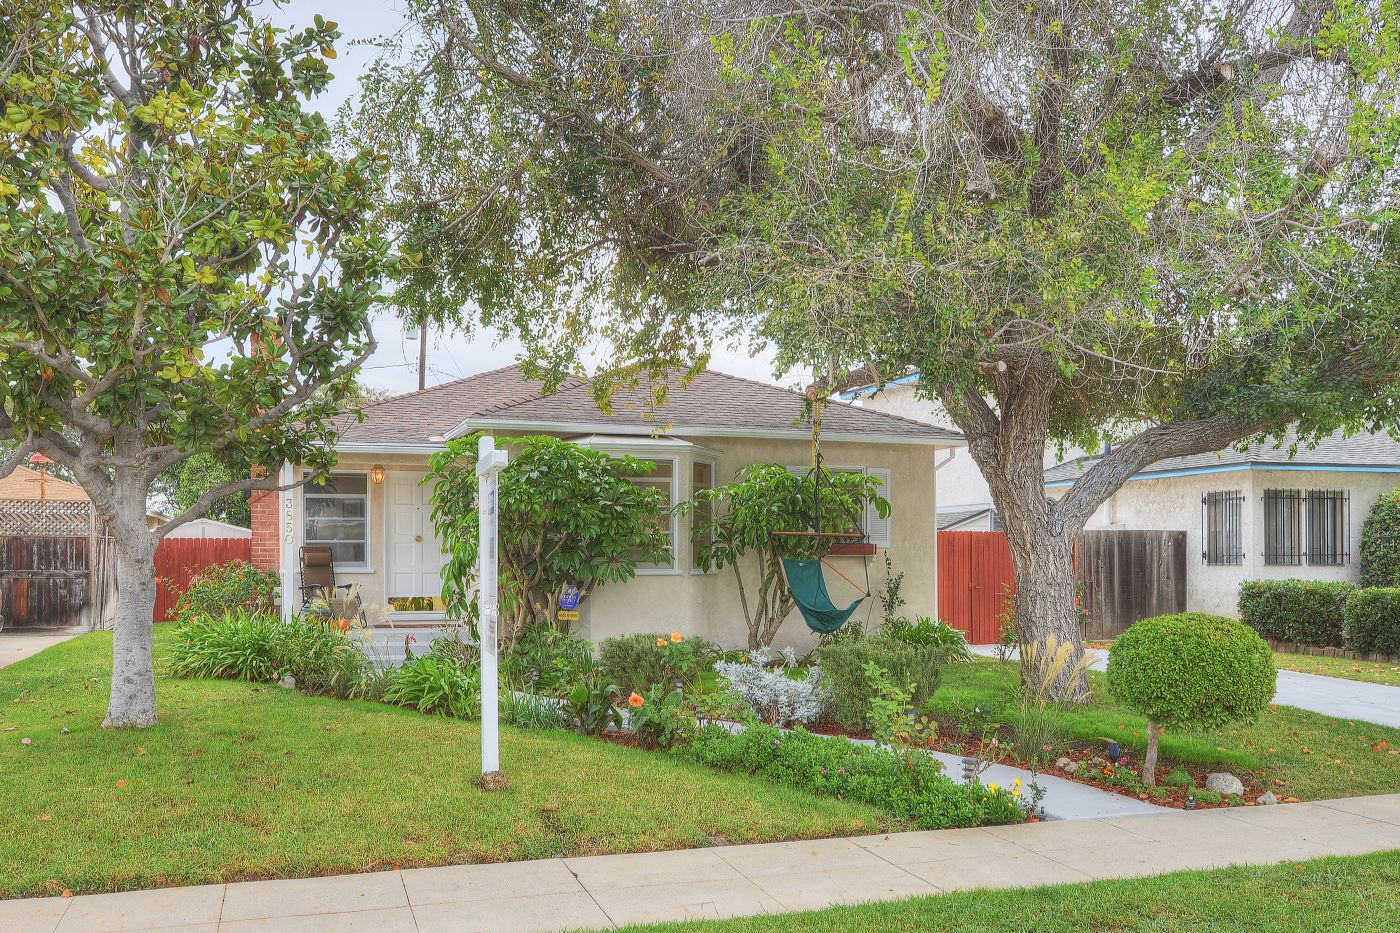 <b>SOLD OVER ASKING, MULTIPLE OFFERS</b><br>3850 Bledsoe Ave<br>Culver City<br>Offered at $899,000